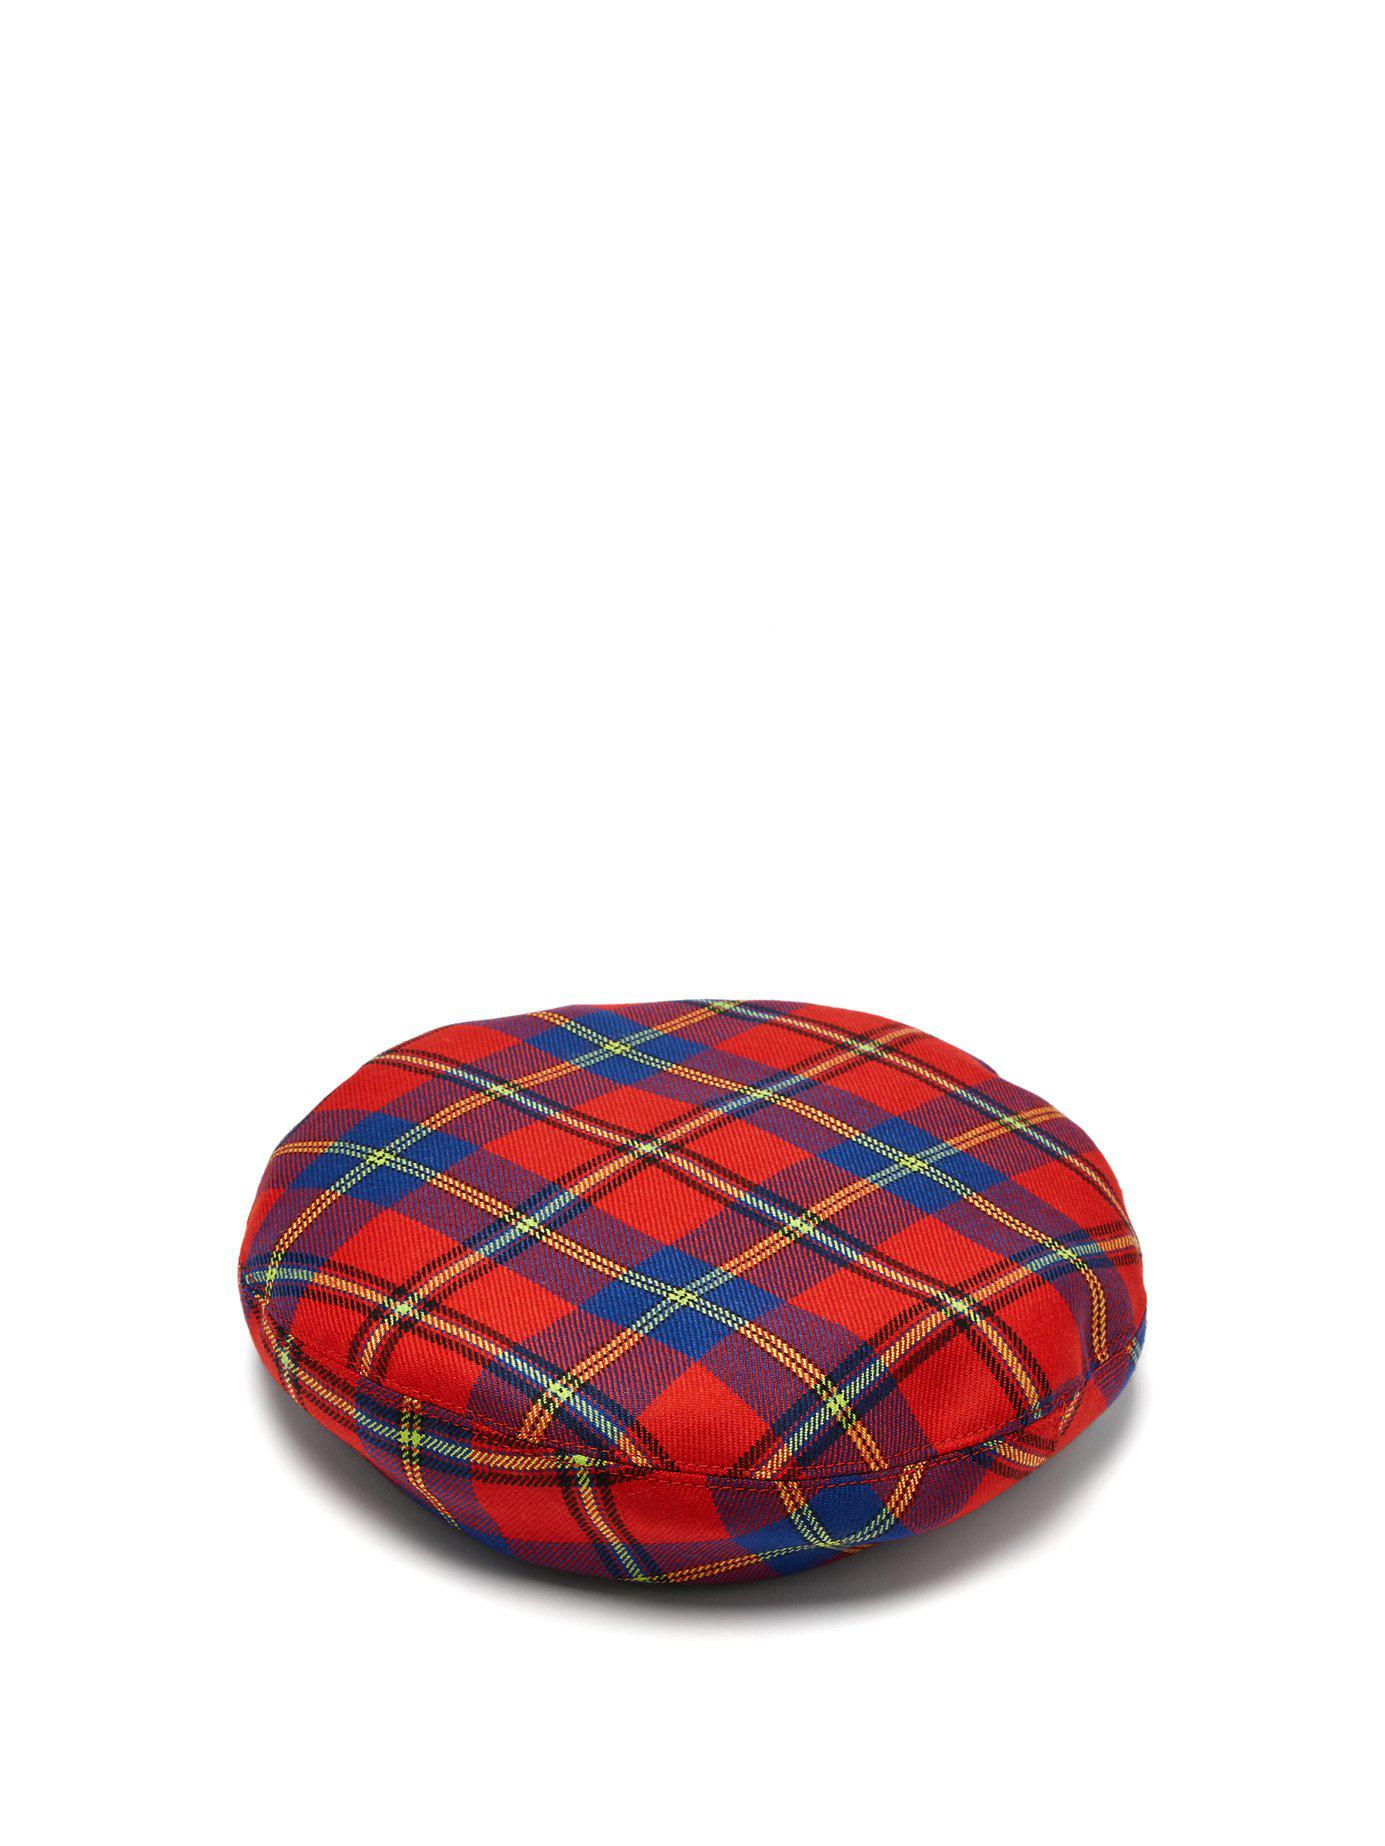 93ab0b33d572d Versace Red Plaid Medusa Beret in Red - Save 23.684210526315795% - Lyst